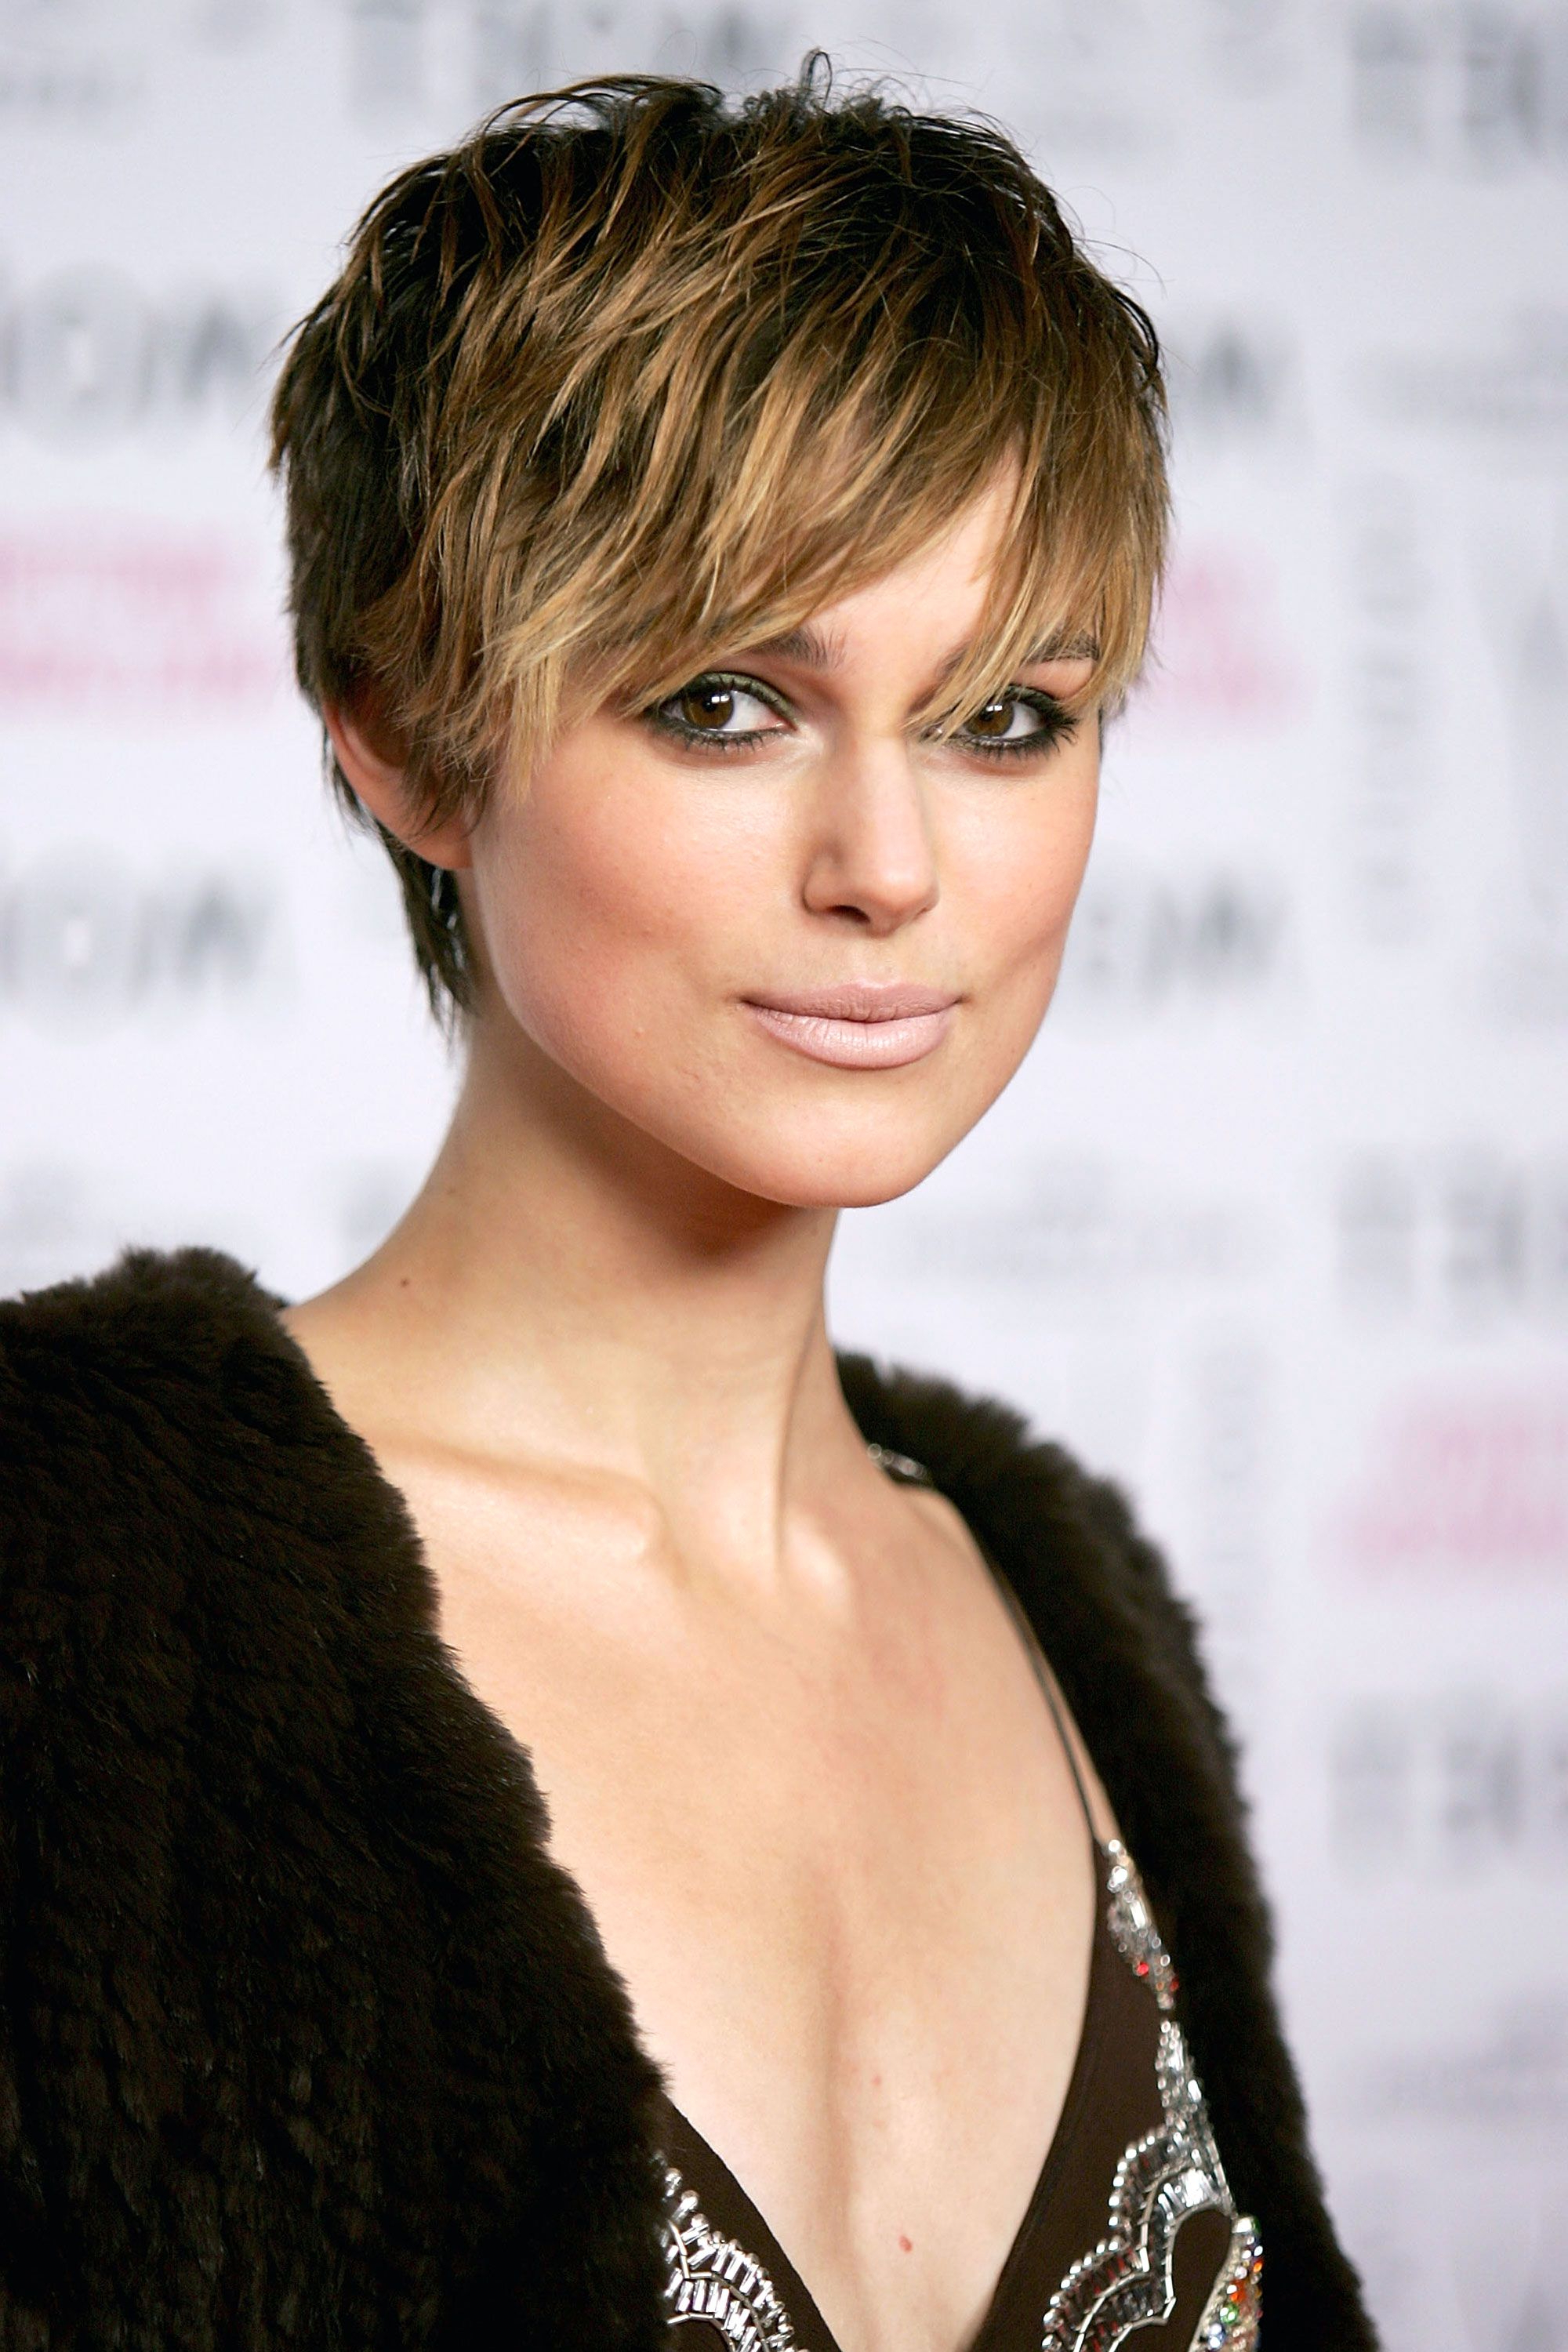 50+ Pixie Cuts We Love For 2018 – Short Pixie Hairstyles From Inside Layered Pixie Hairstyles With Textured Bangs (View 13 of 20)